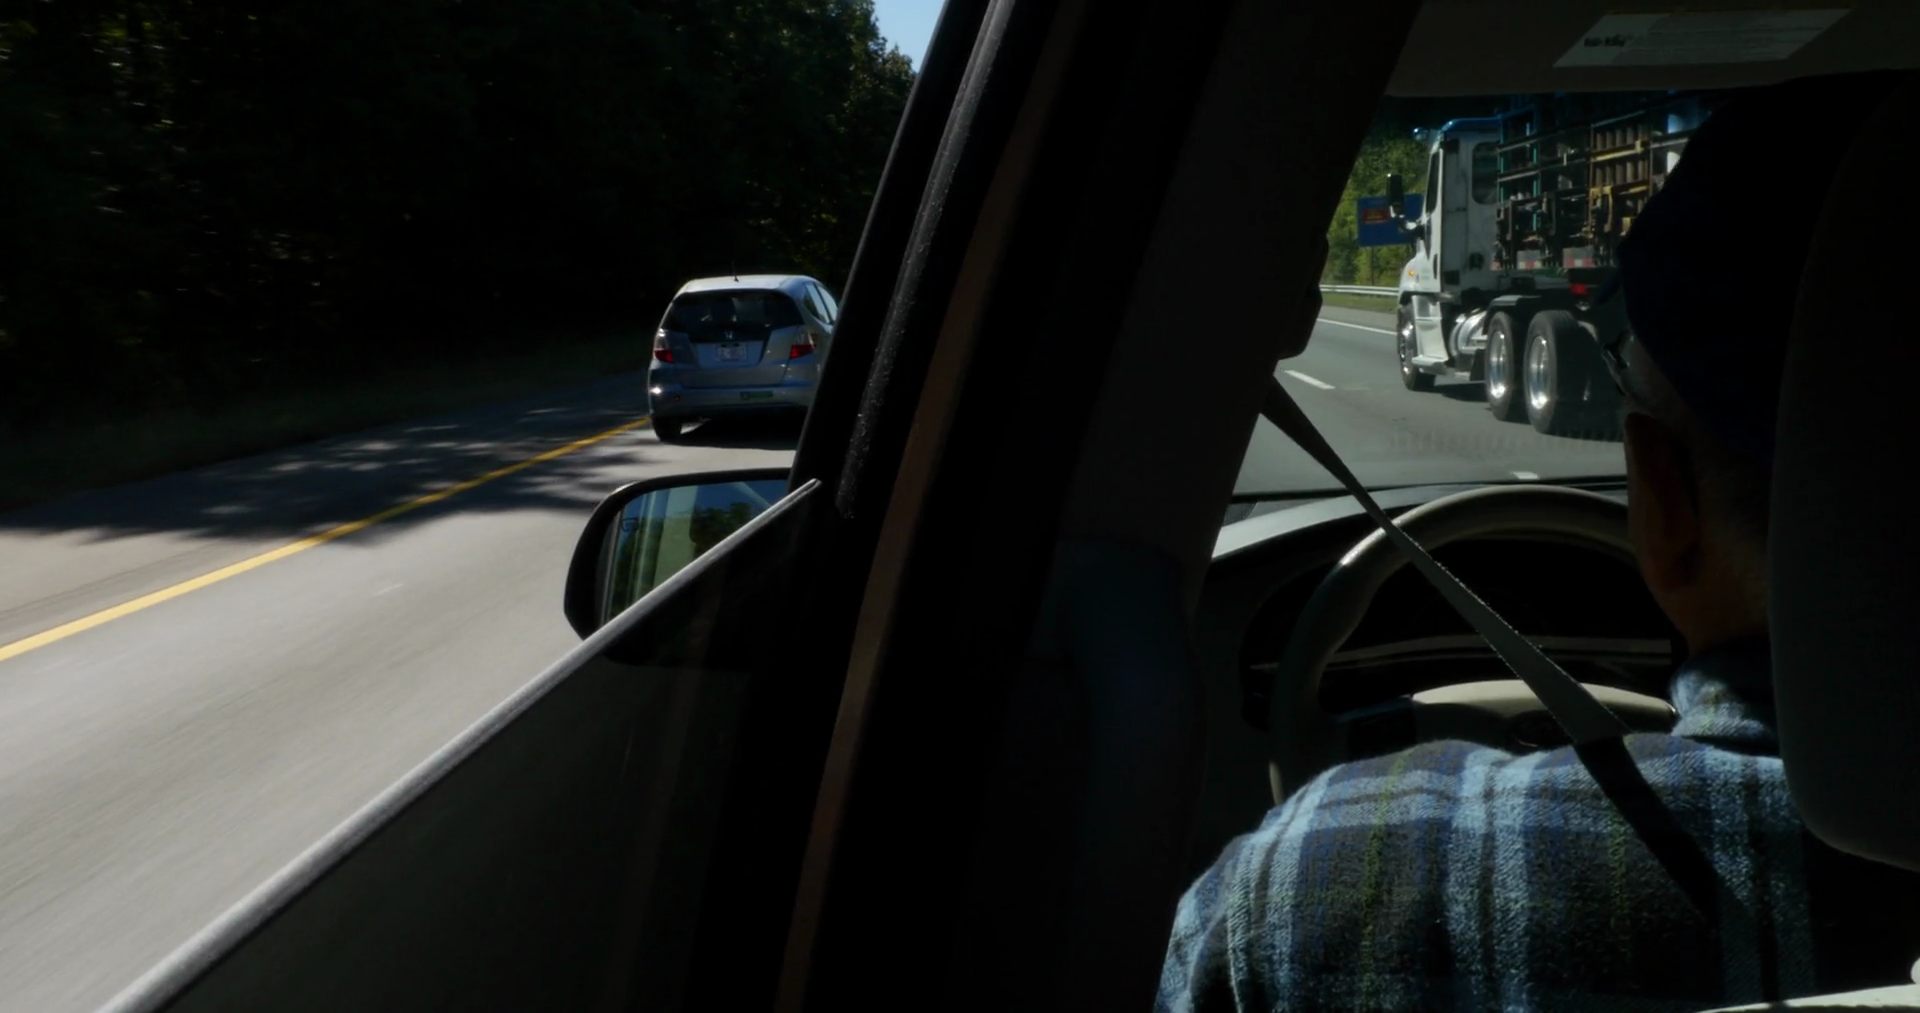 A Kid's View from the Backseat